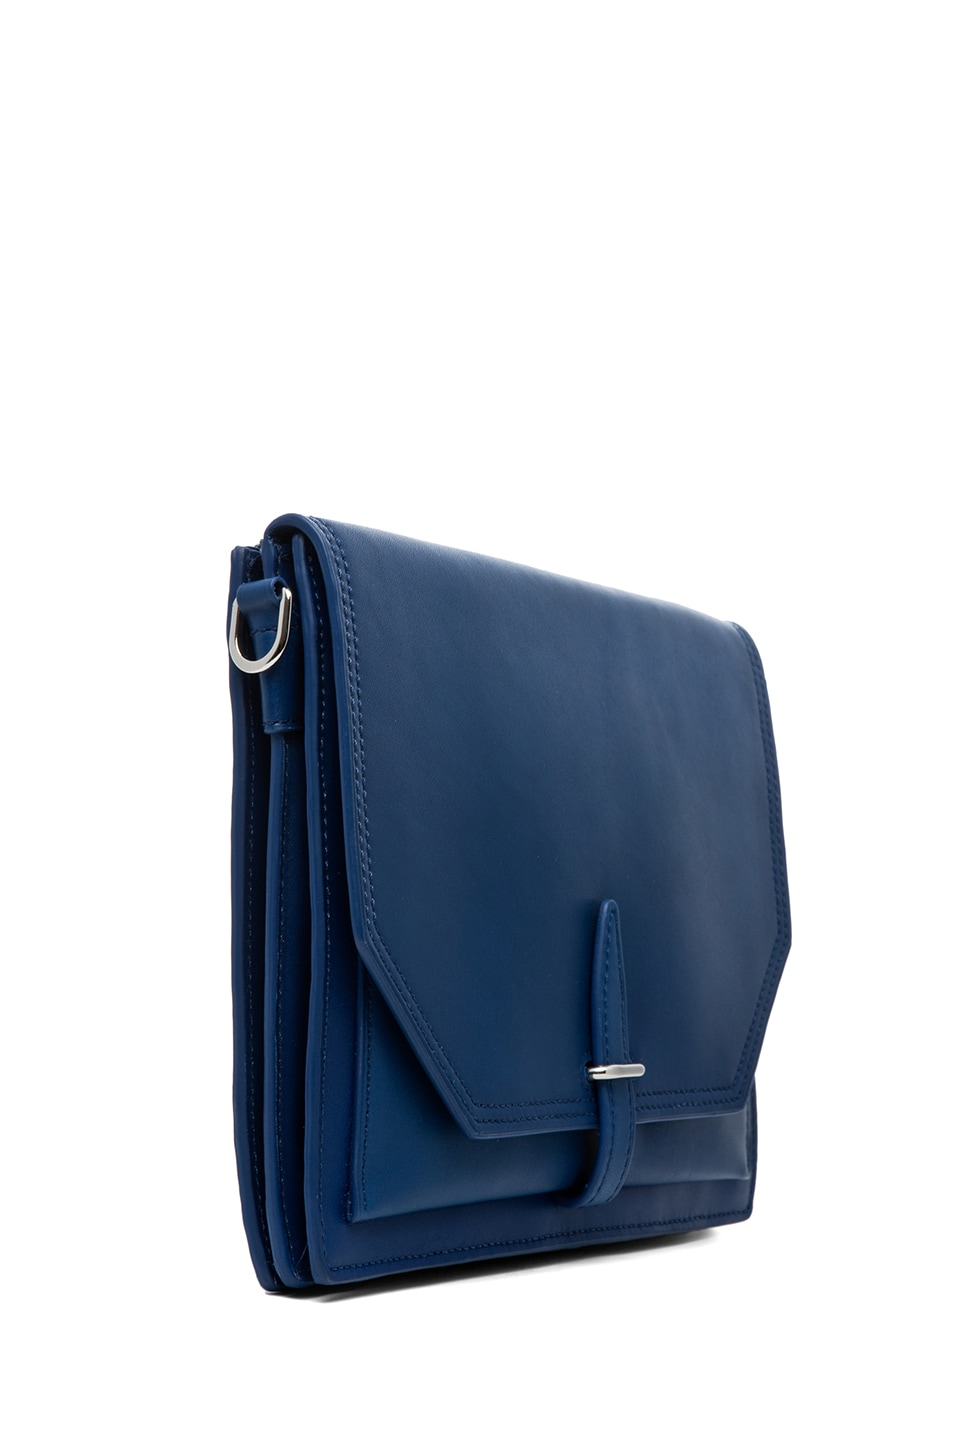 Image 3 of 3.1 phillip lim Polly Double Compartment Crossbody in Cerulean